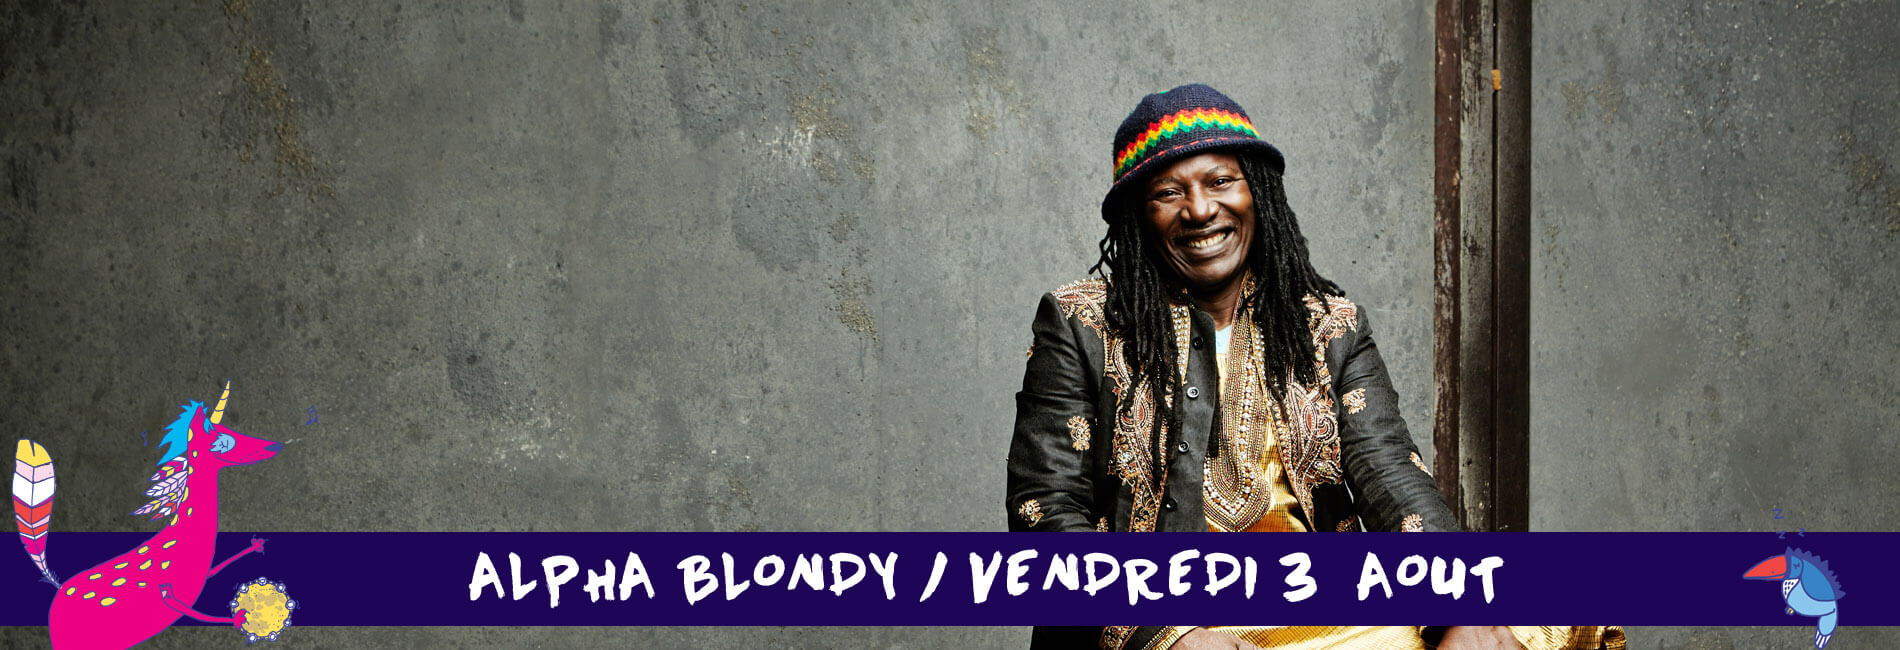 1ALPHA BLONDY